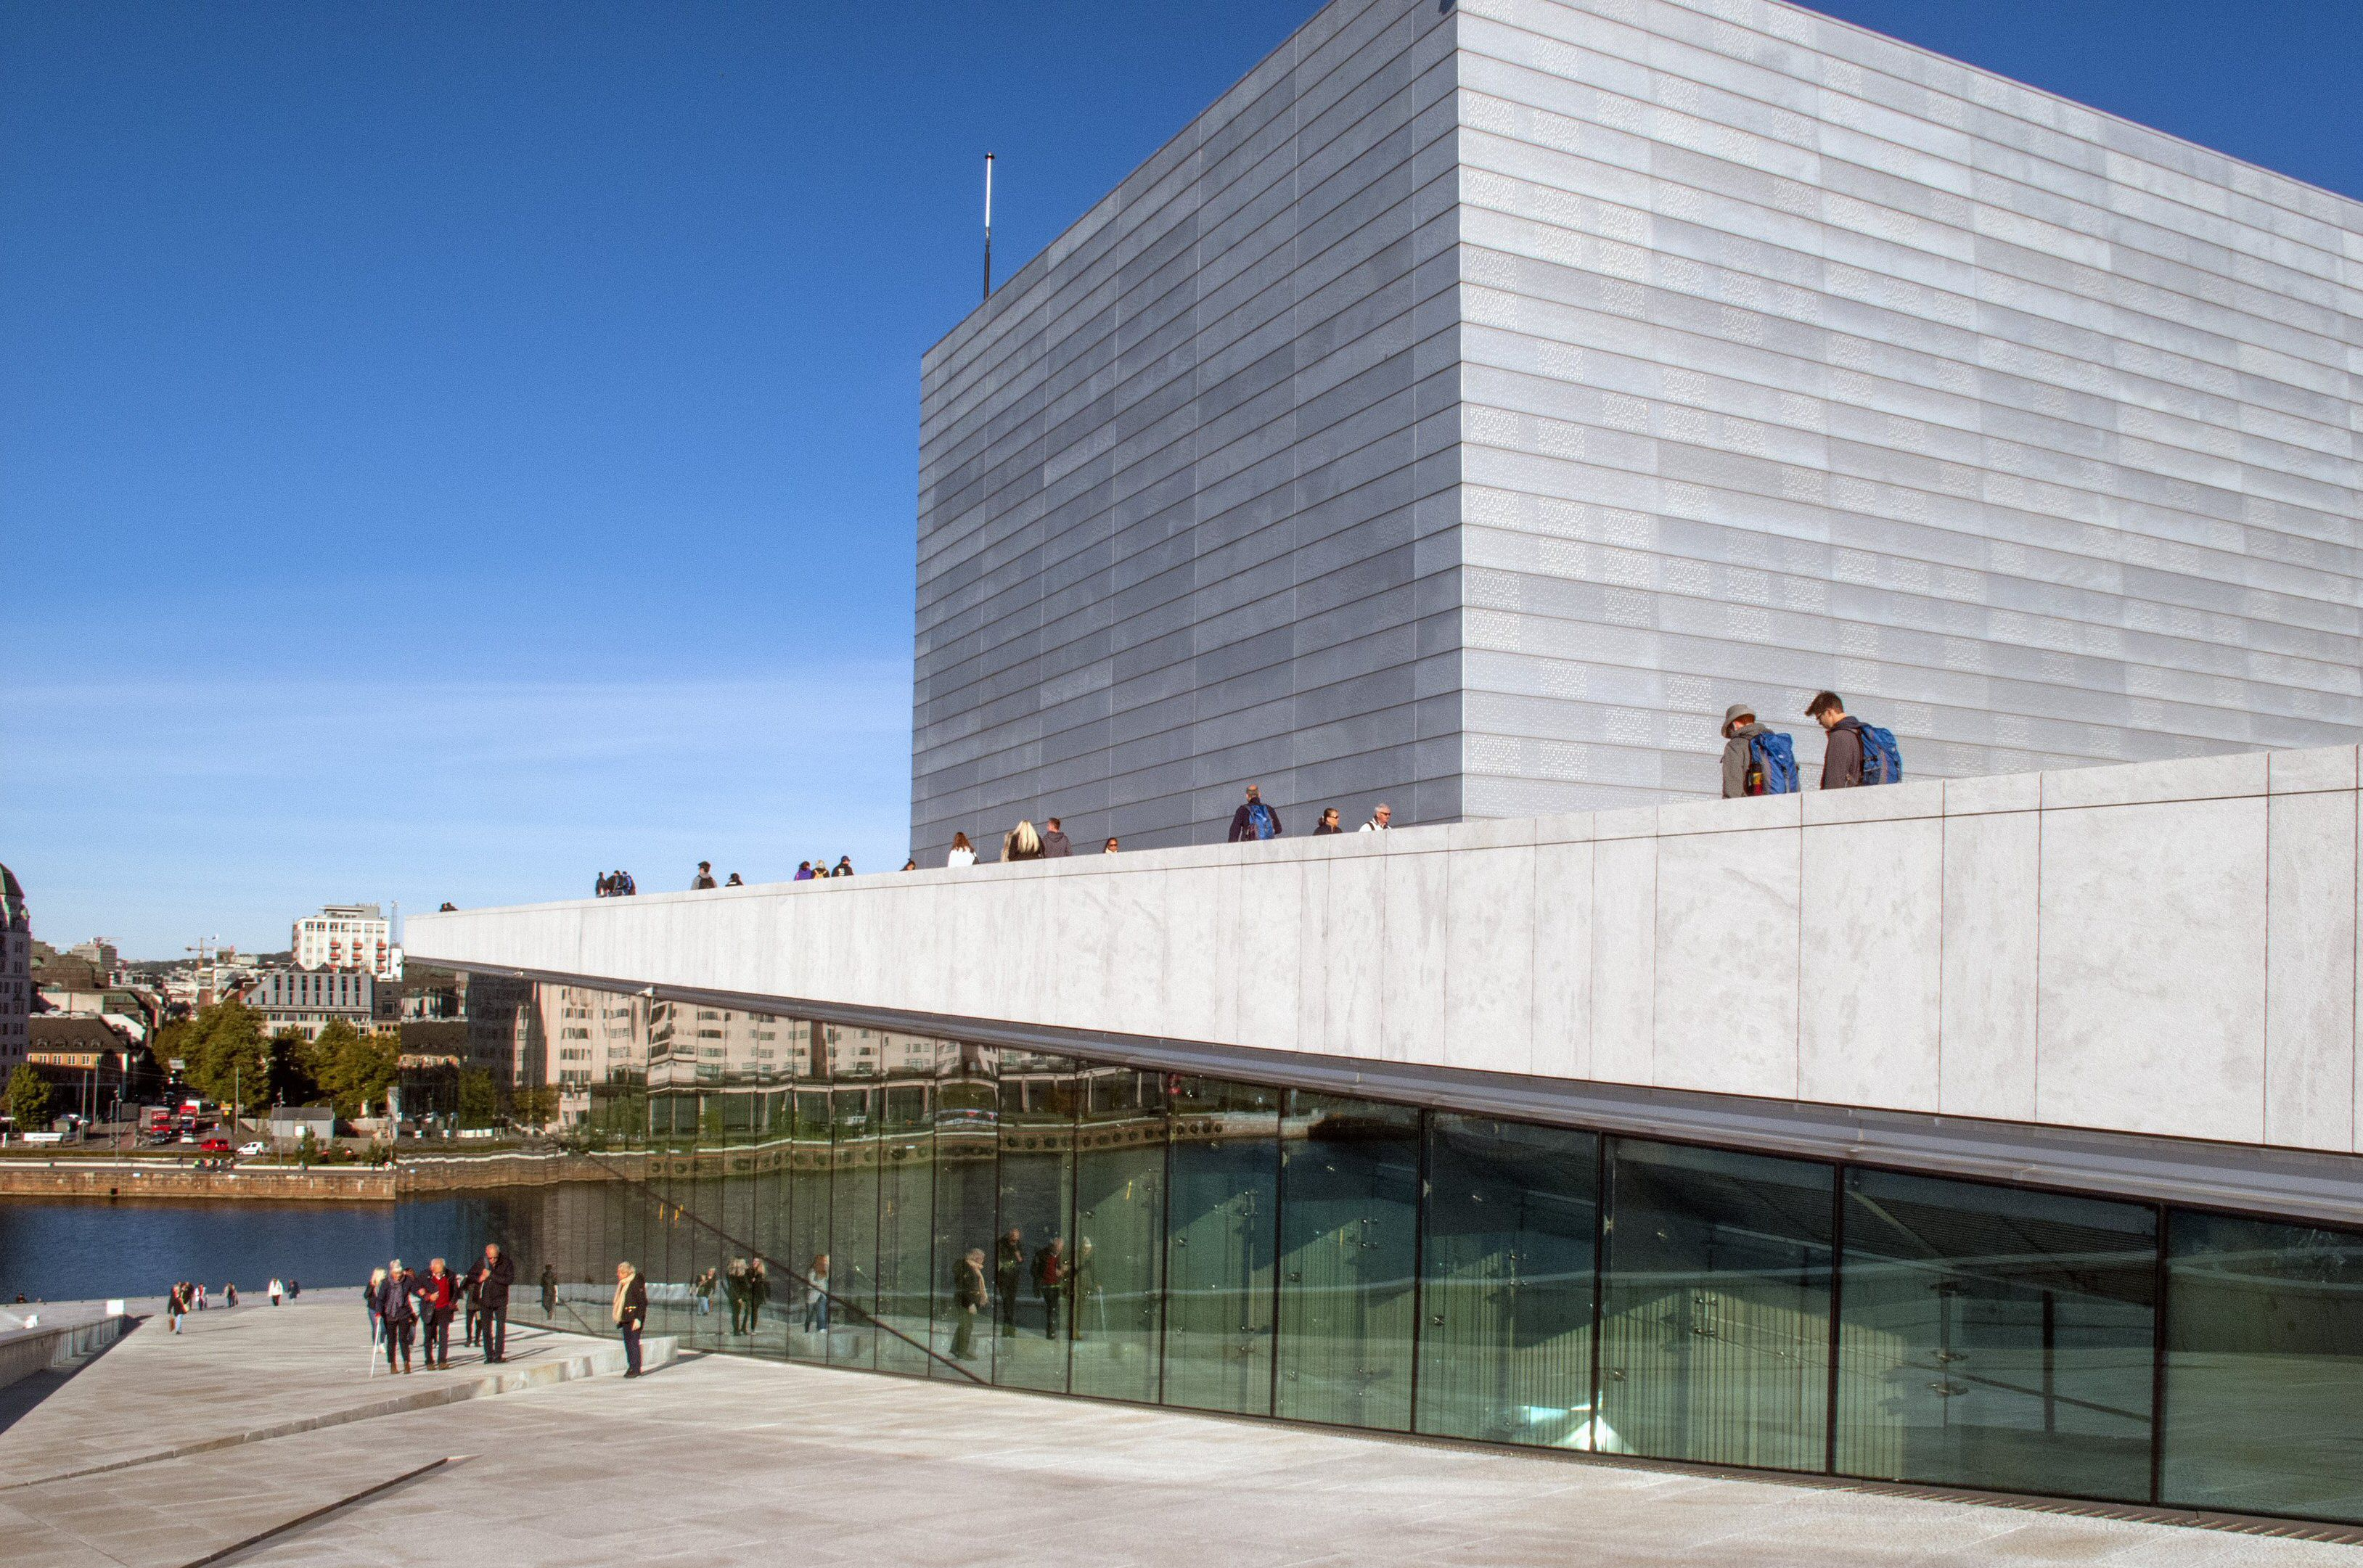 Exterior Geometry of the Oslo Opera House in Norway